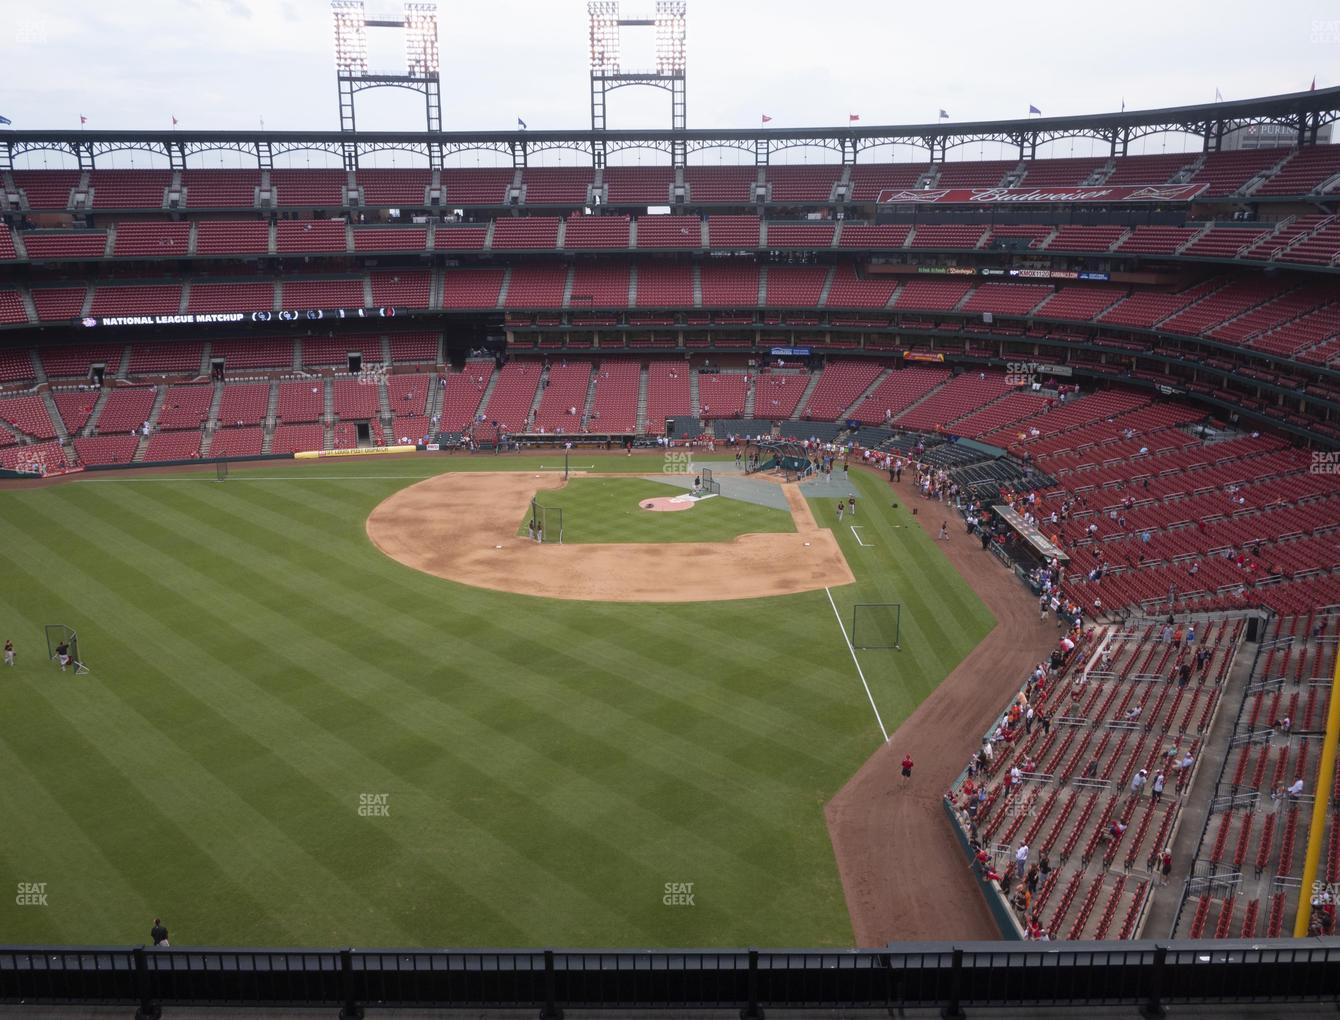 St. Louis Cardinals at Busch Stadium Left Field Pavilion 372 View